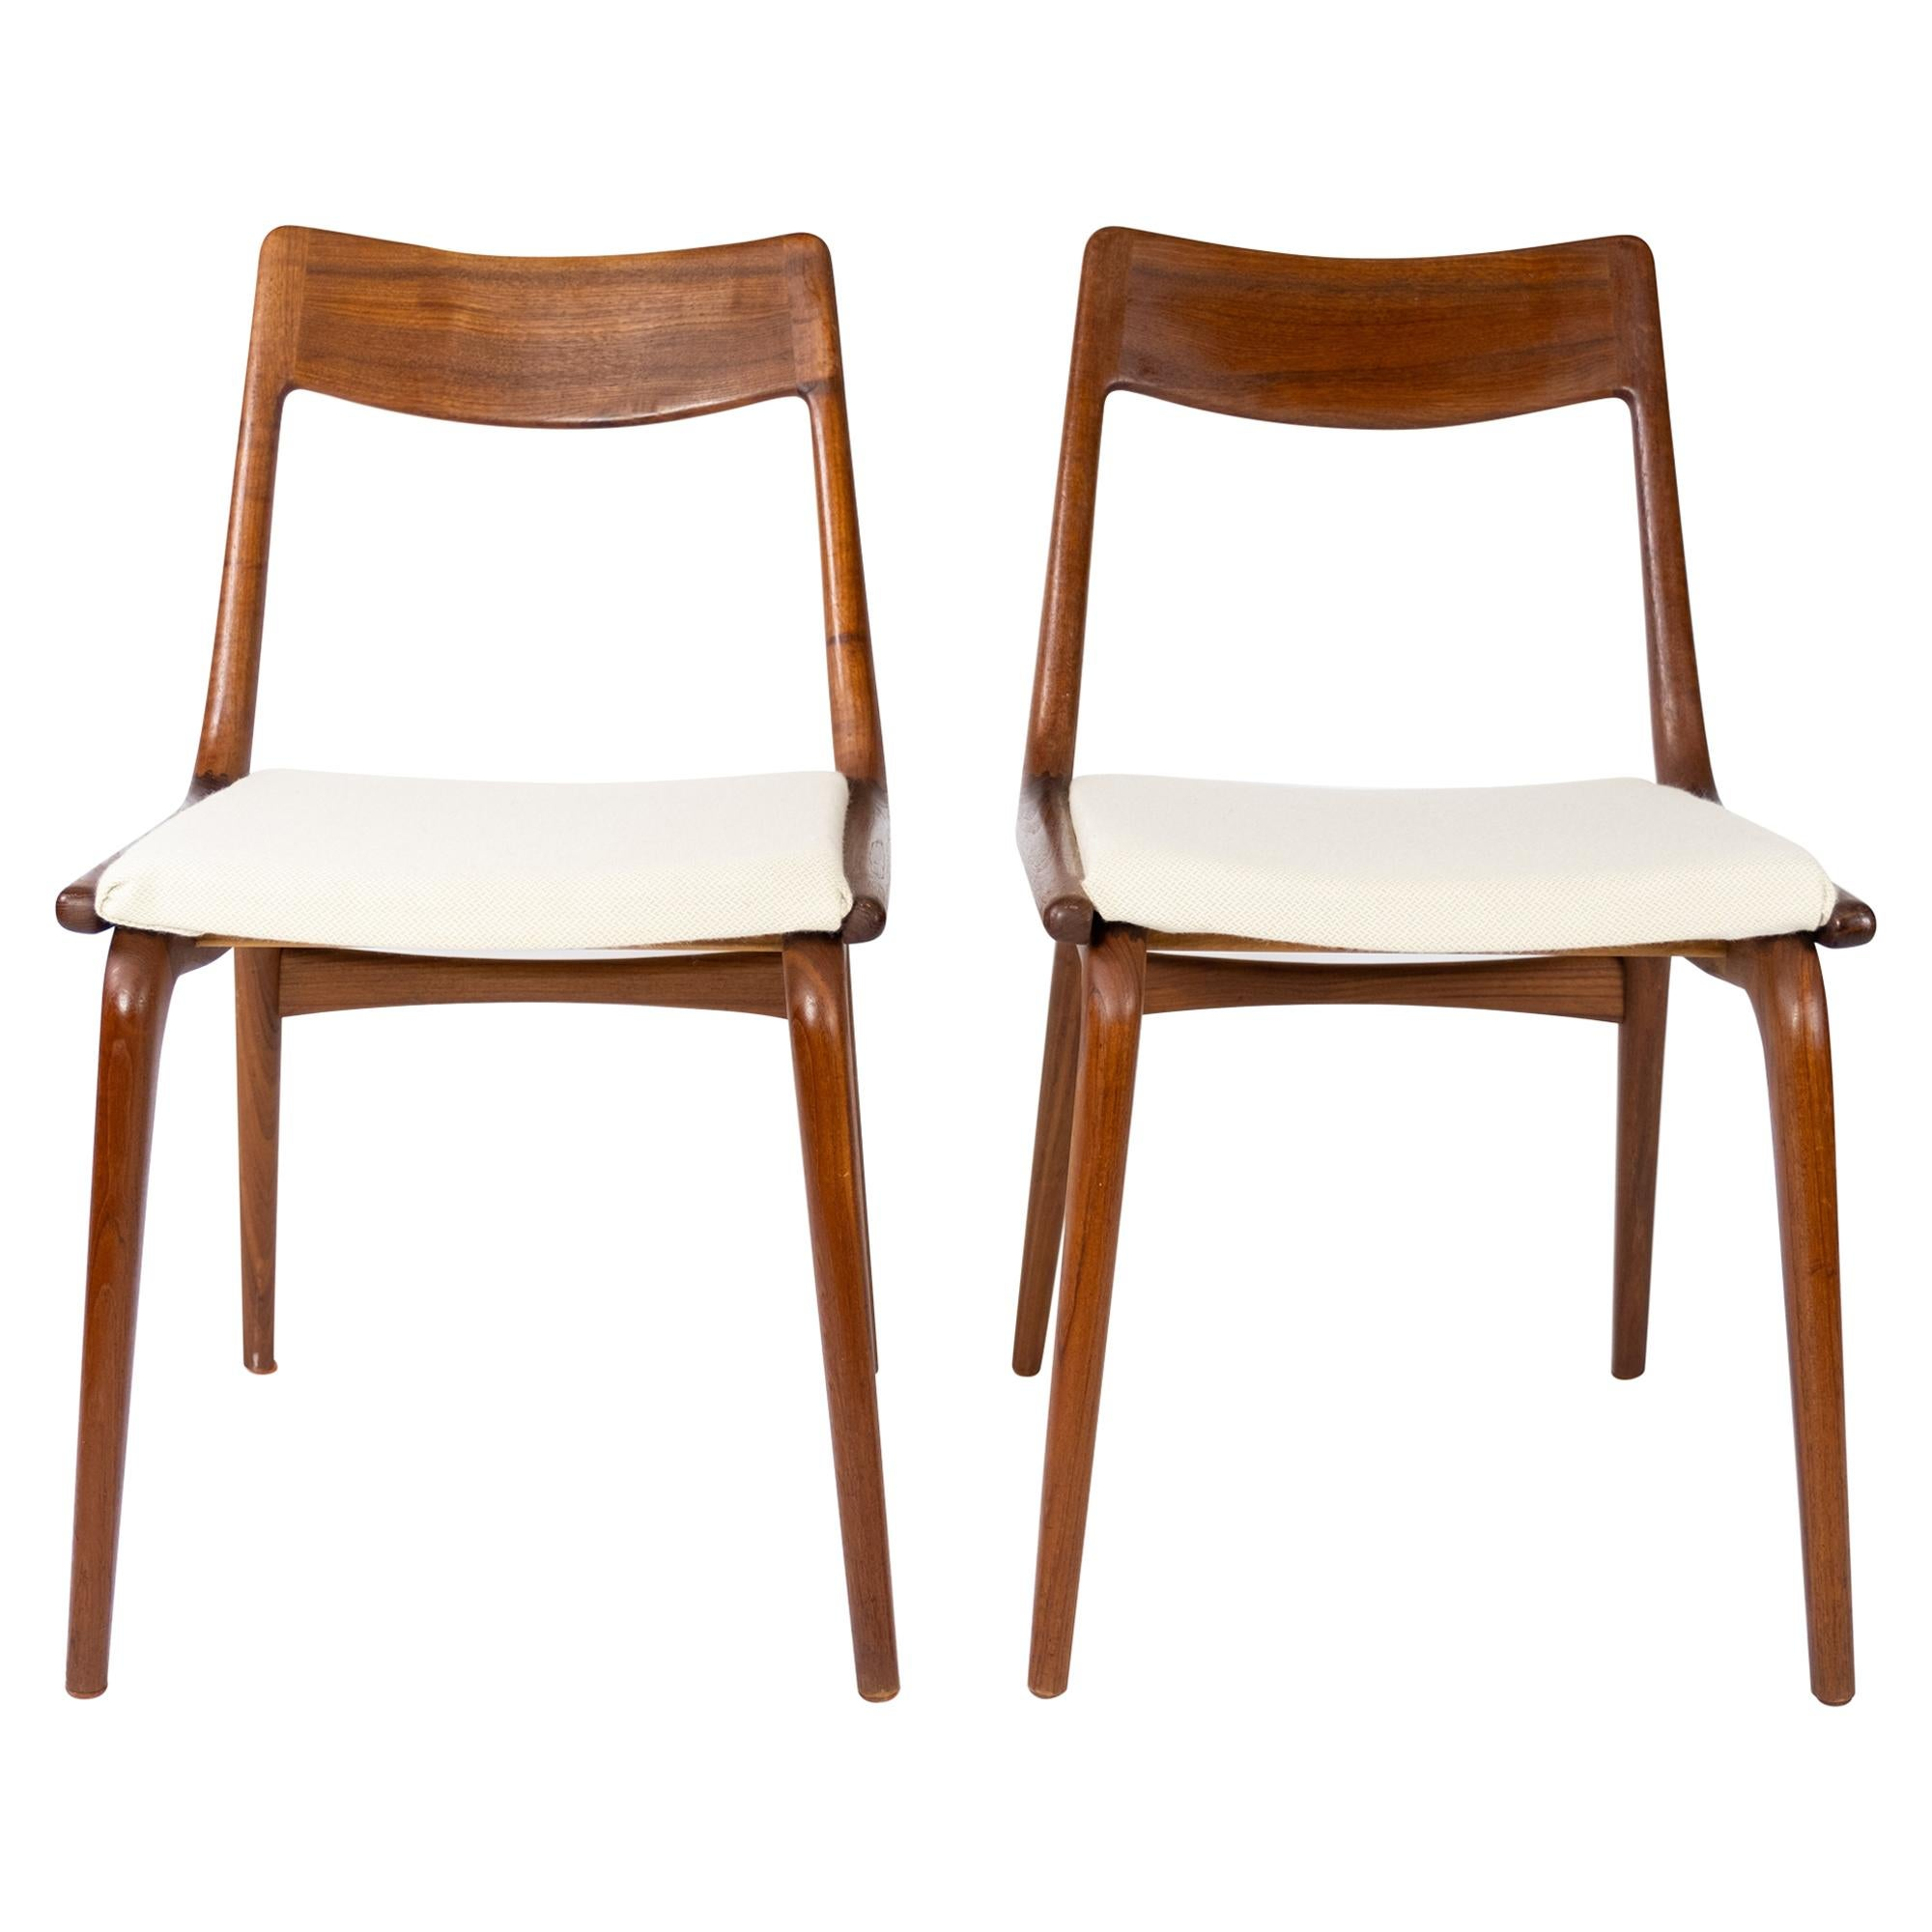 Papir of Dining Chairs, Model Boomerang, by Alfred Christensen, 1960s